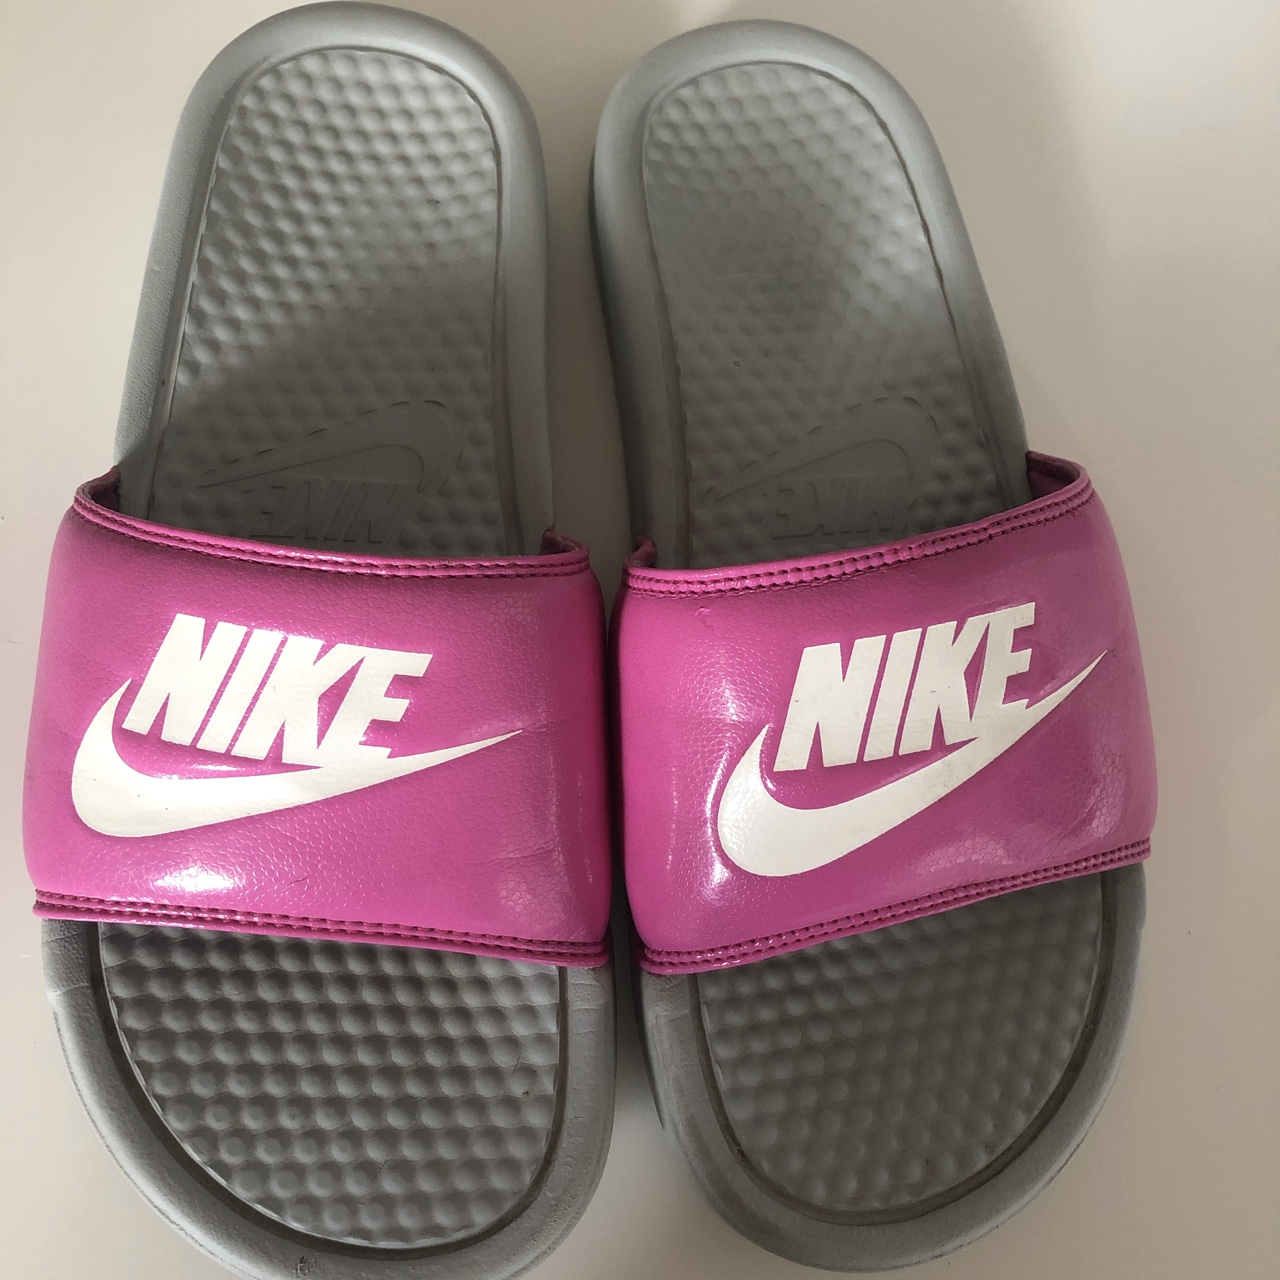 Nike sliders. Size 5.5. Fab condition